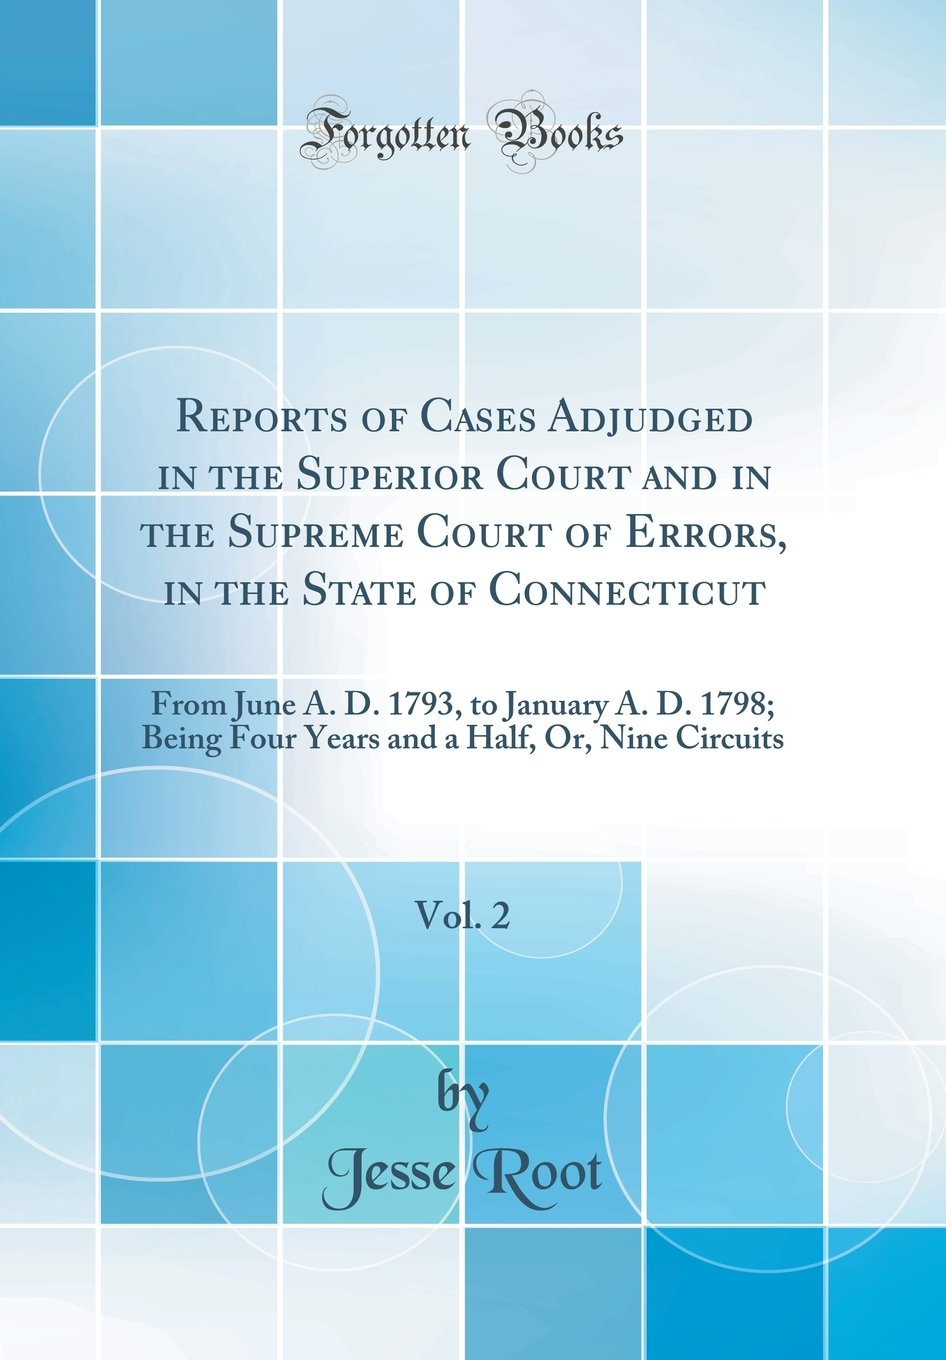 Reports of Cases Adjudged in the Superior Court and in the Supreme Court of Errors, in the State of Connecticut, Vol. 2: From June A. D. 1793, to ... a Half, Or, Nine Circuits (Classic Reprint) ebook